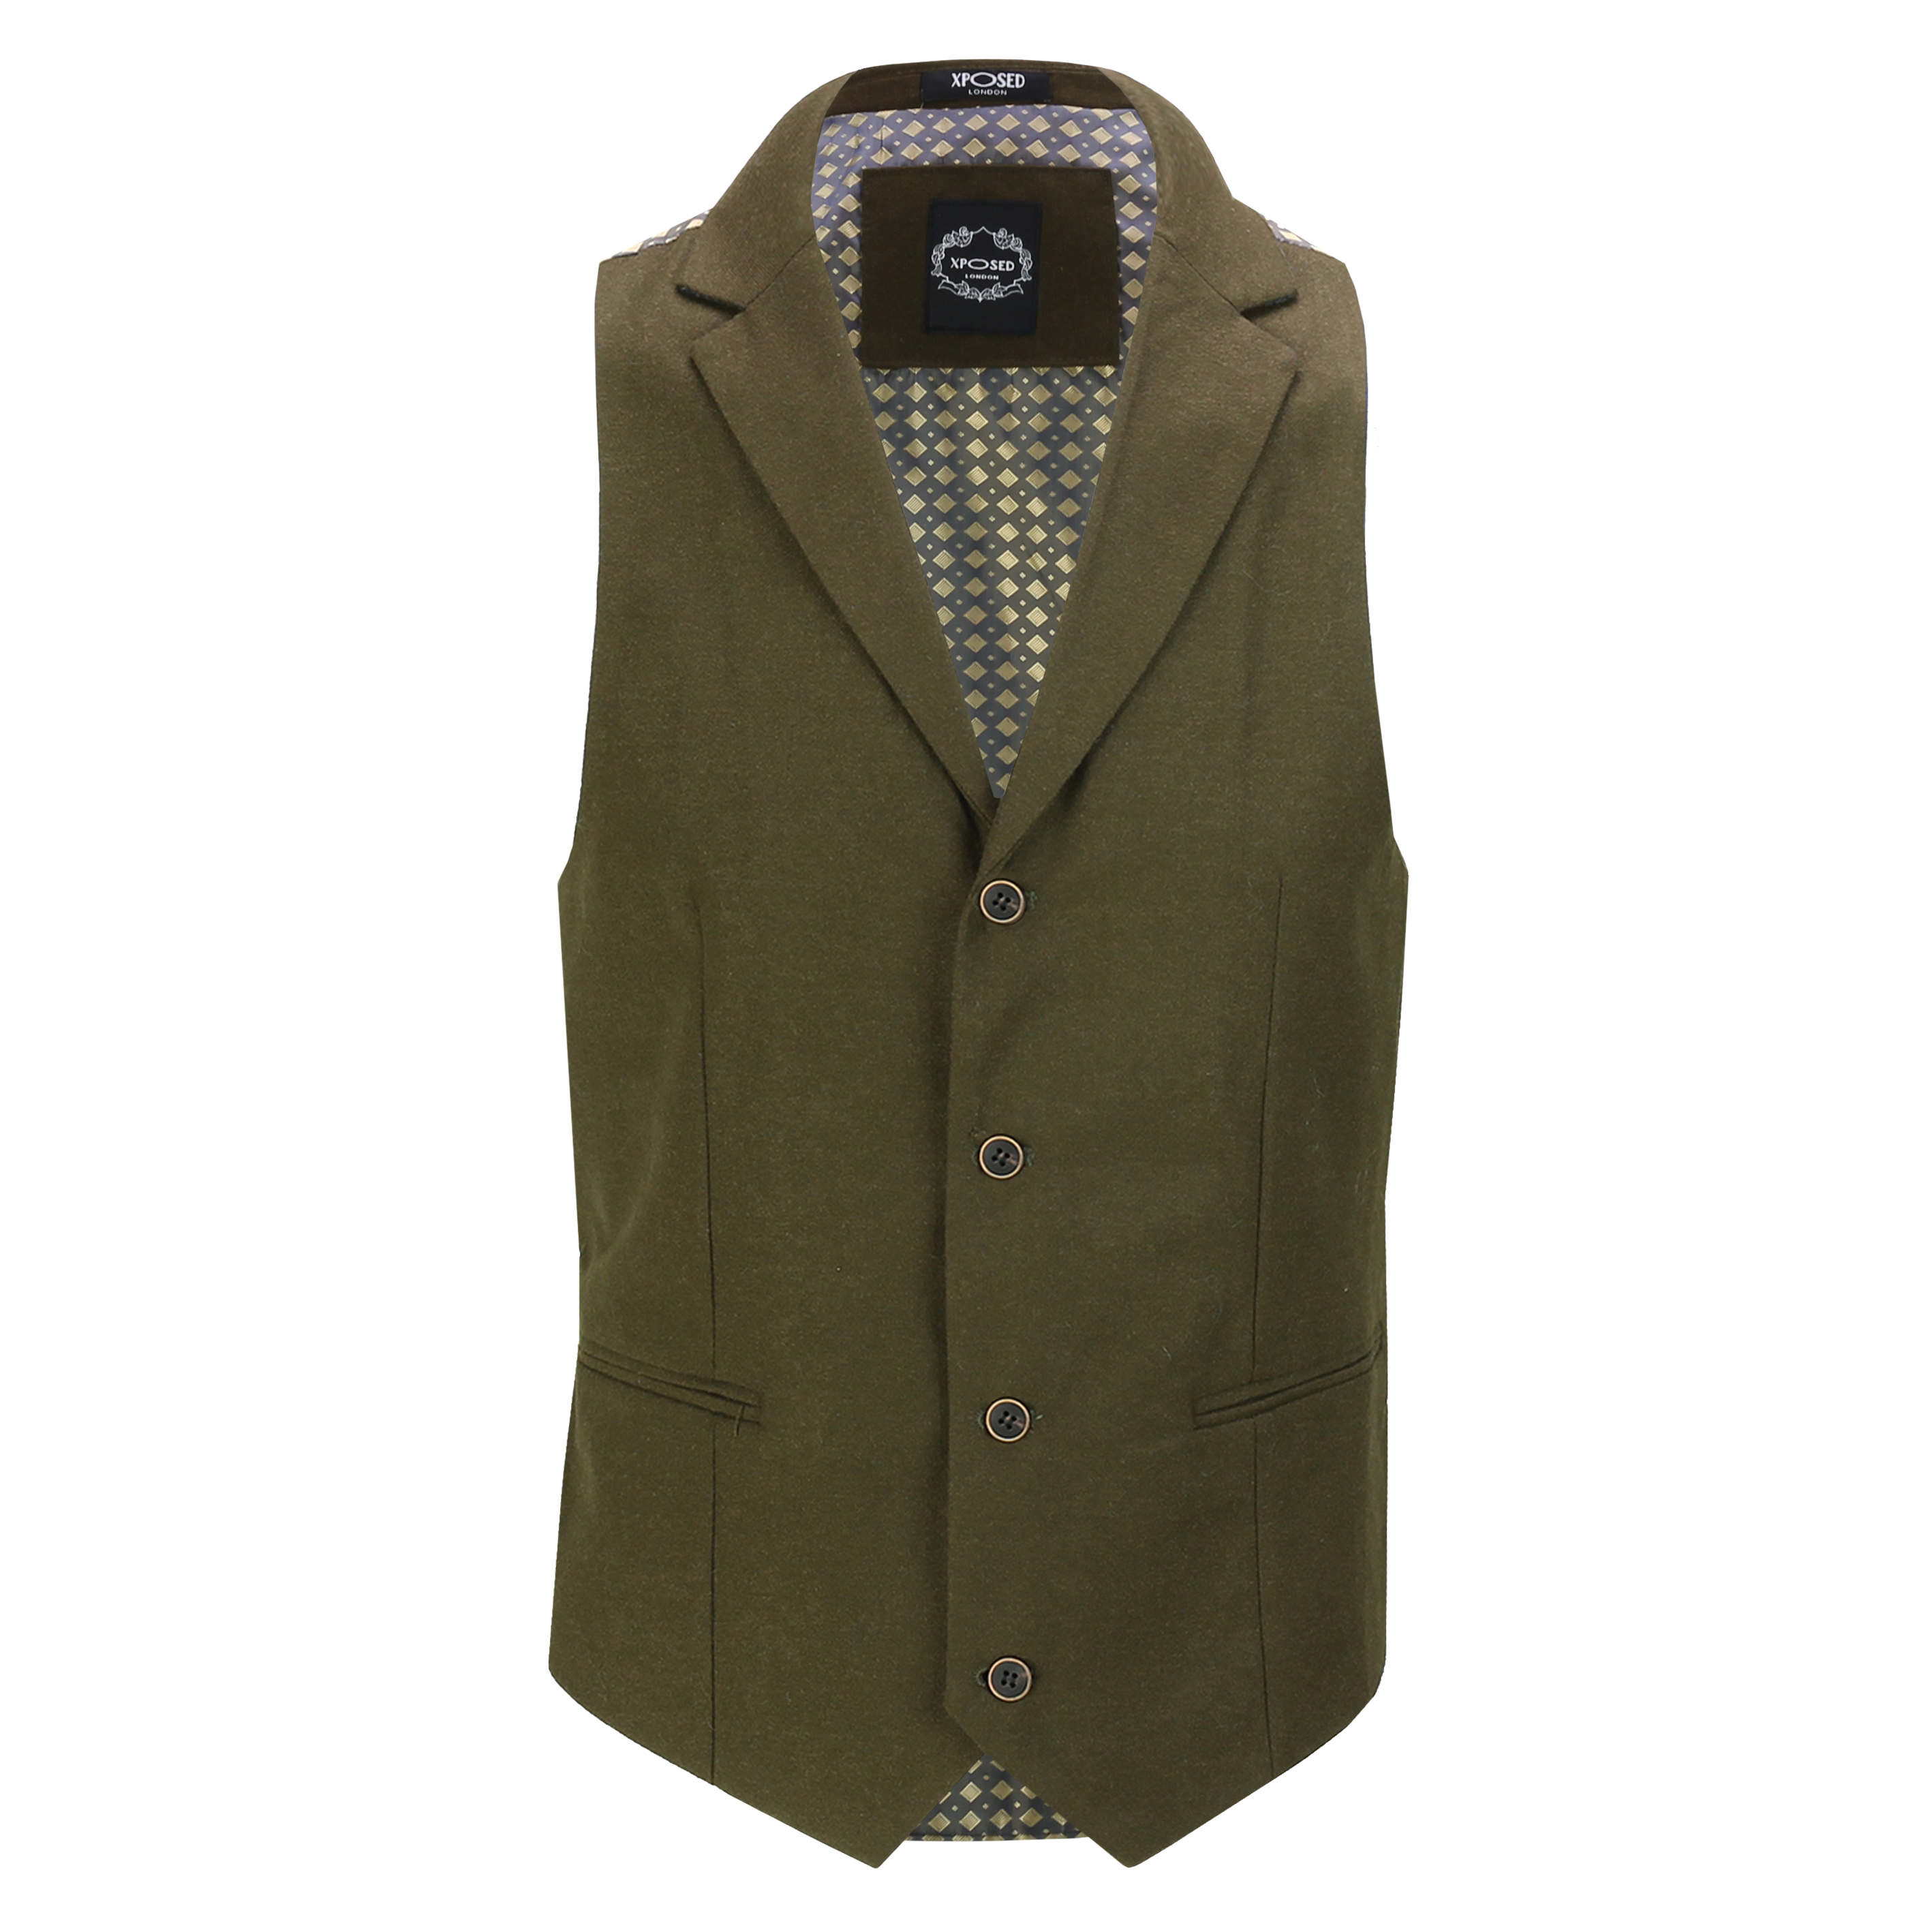 Mens-Classic-Collar-Waistcoat-Retro-Vintage-Style-Tailored-Fit-Smart-Formal-Vest thumbnail 6